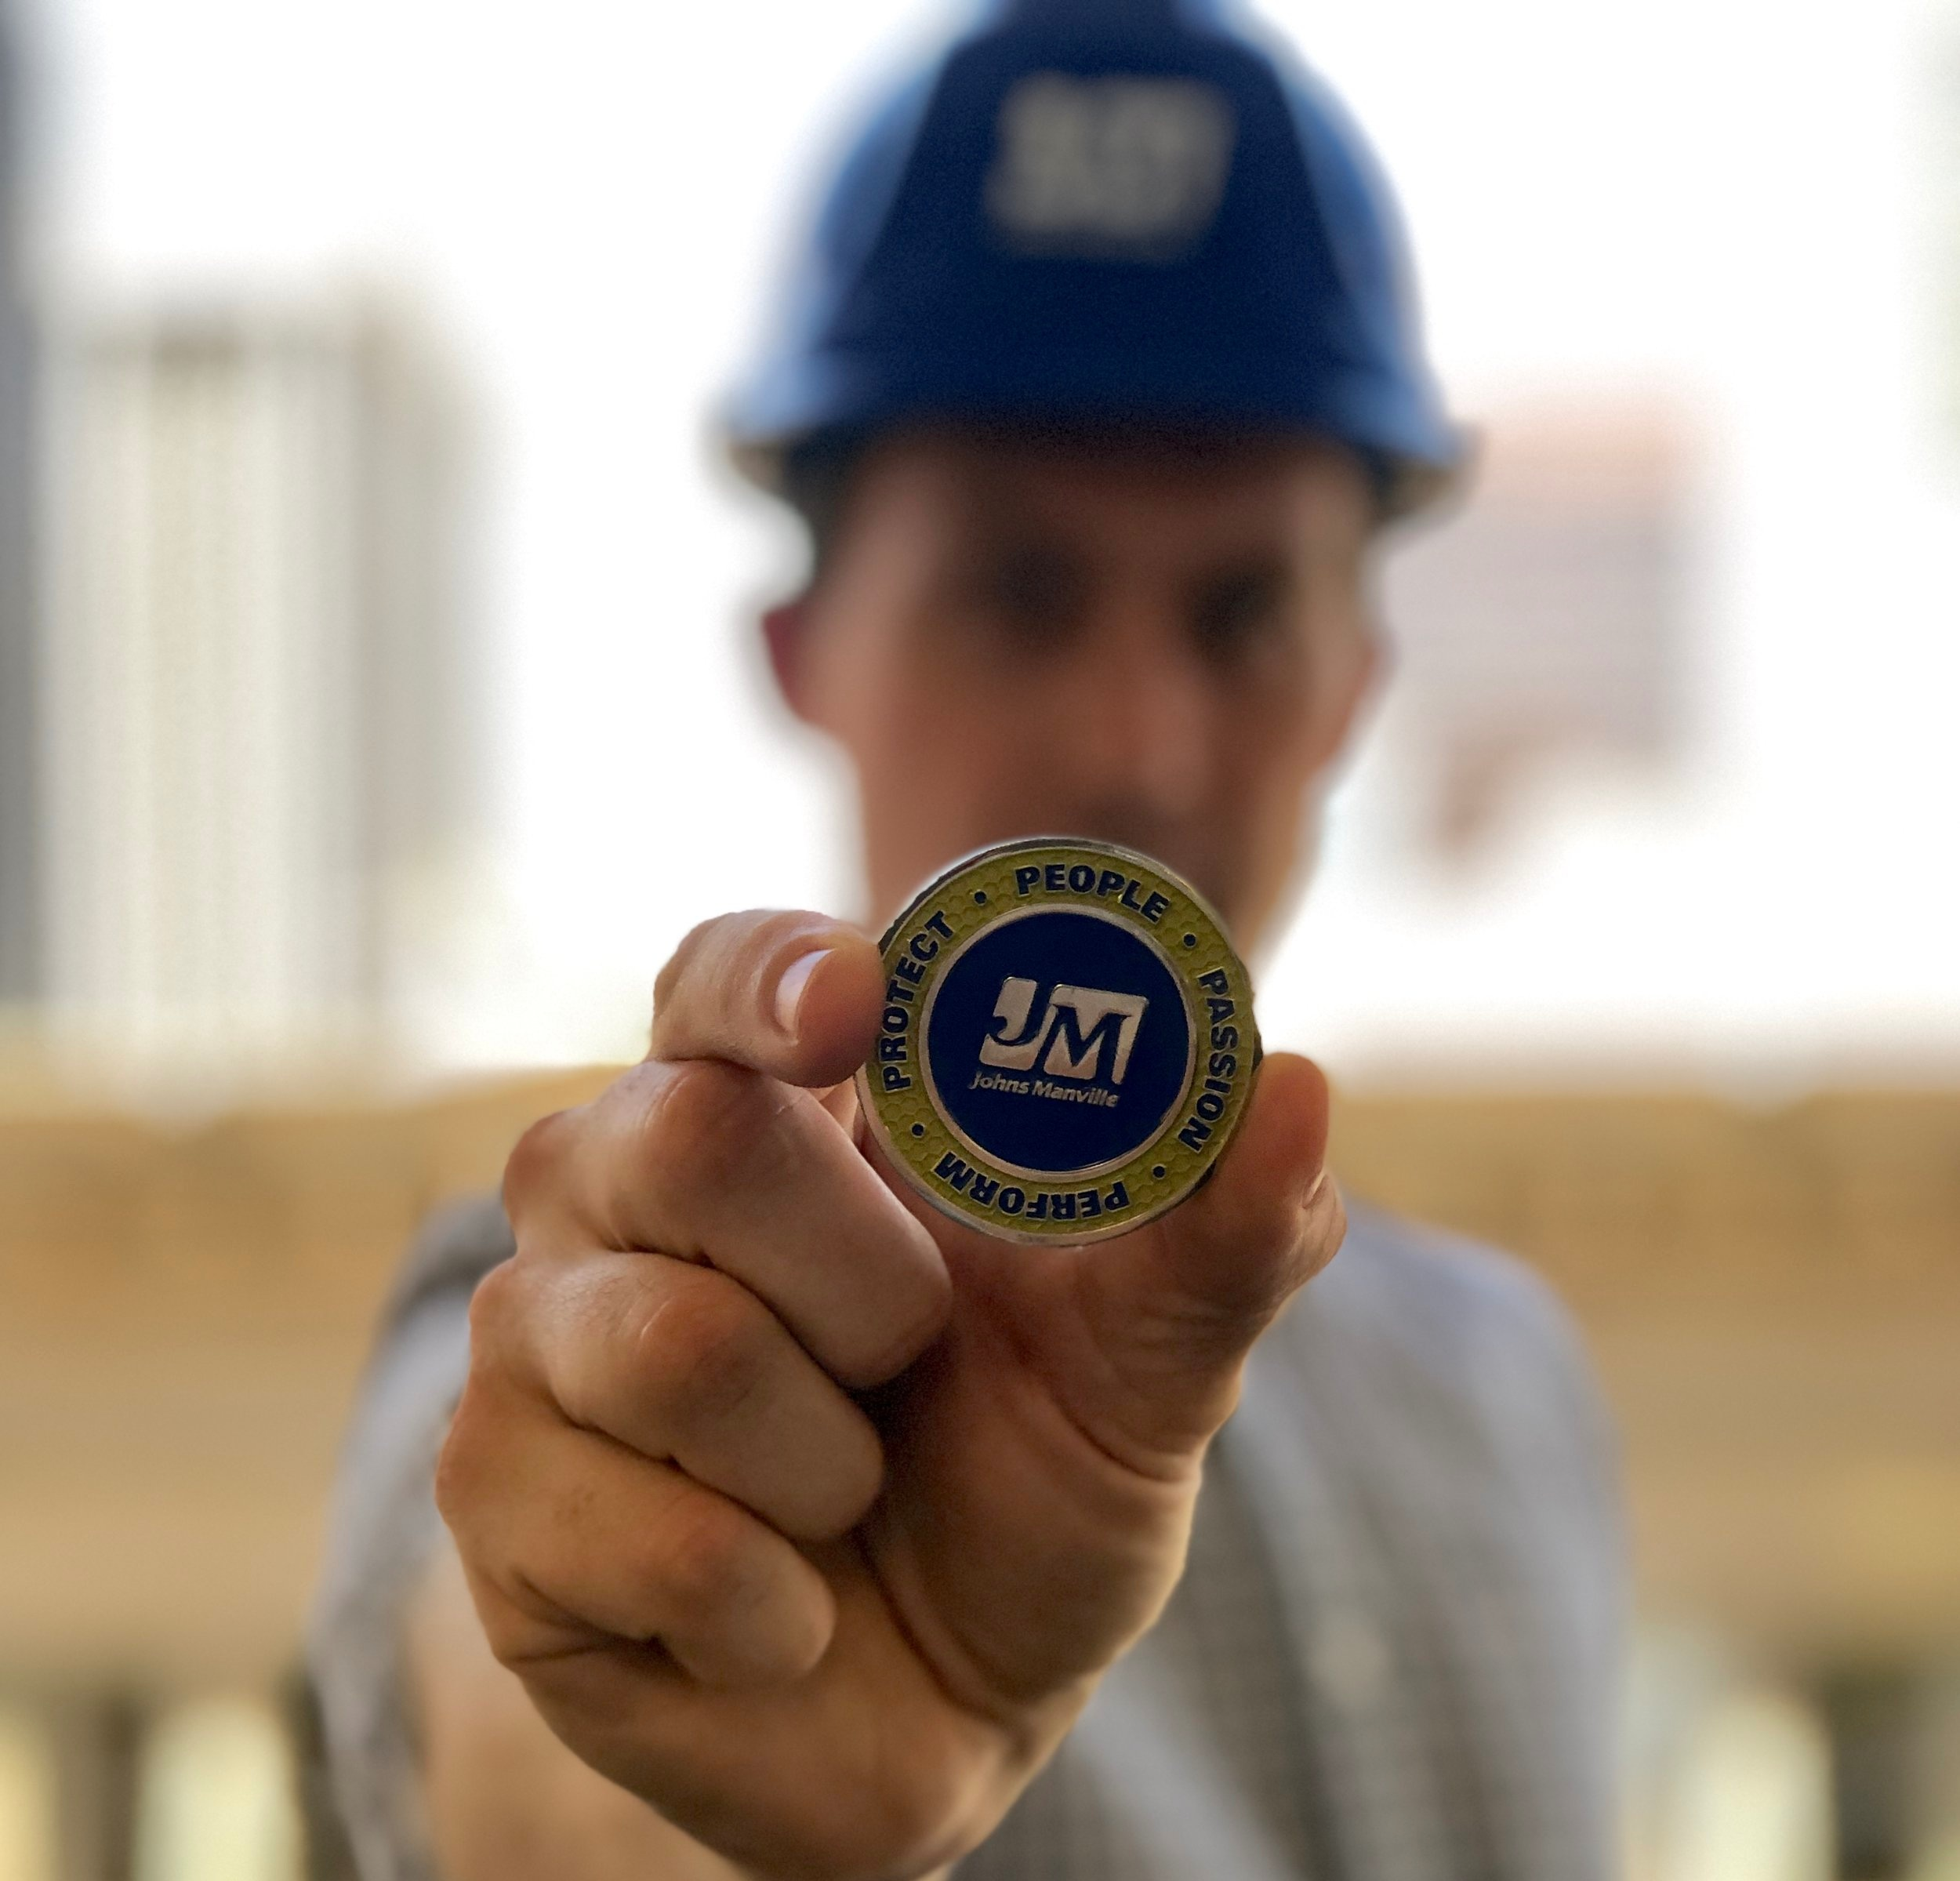 Safety Coins – These are meant to be in the employees pockets to remind them to Stop, Breathe, Think, Plan and Proceed before taking action